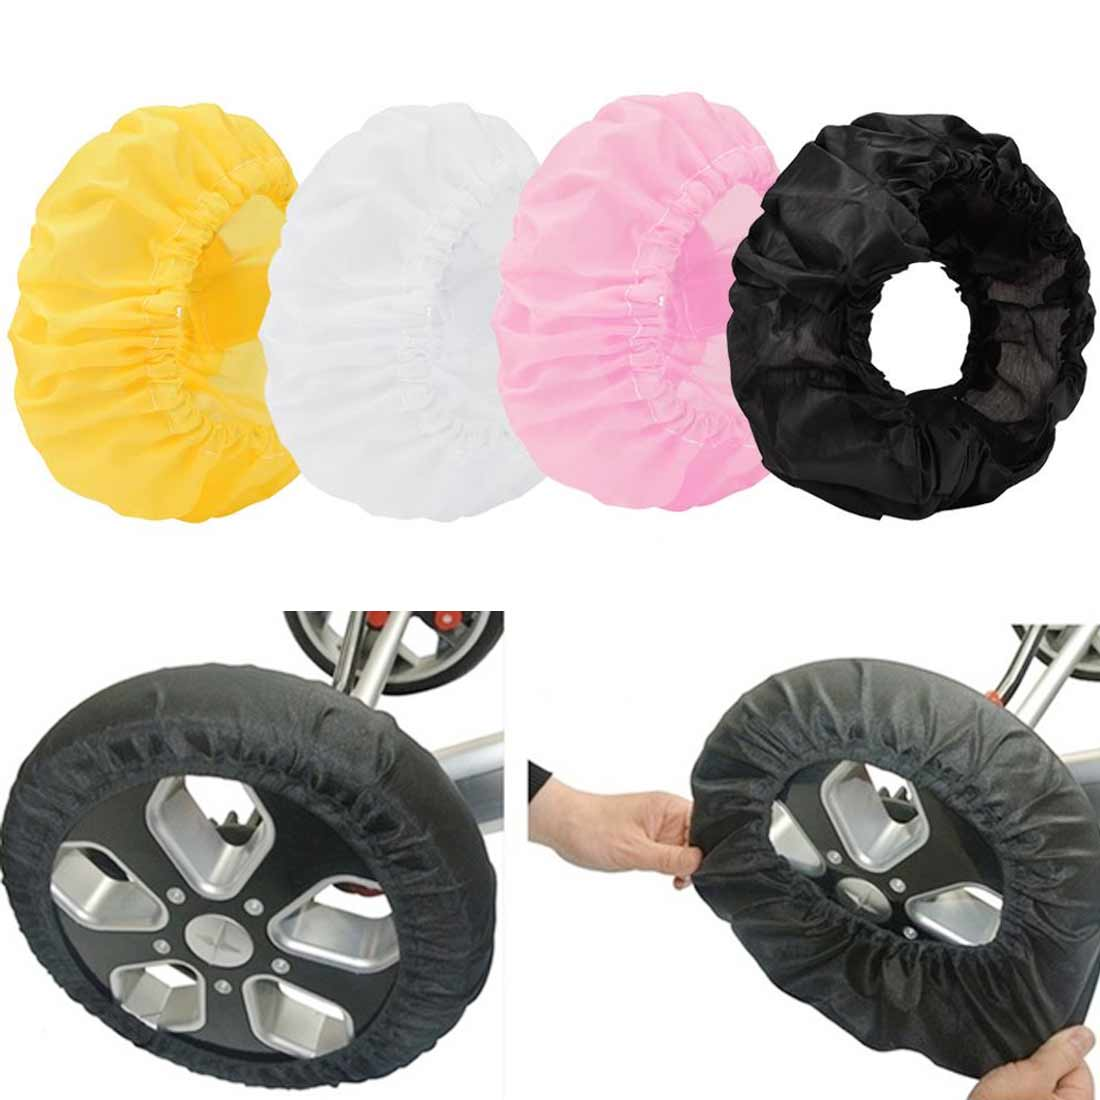 2pcs A Set  Baby Carriage Wheel Cover Pram Pushchair Mosquito Cover 12-25 CM  Width Wheelchair Stroller Dust-proof Cover